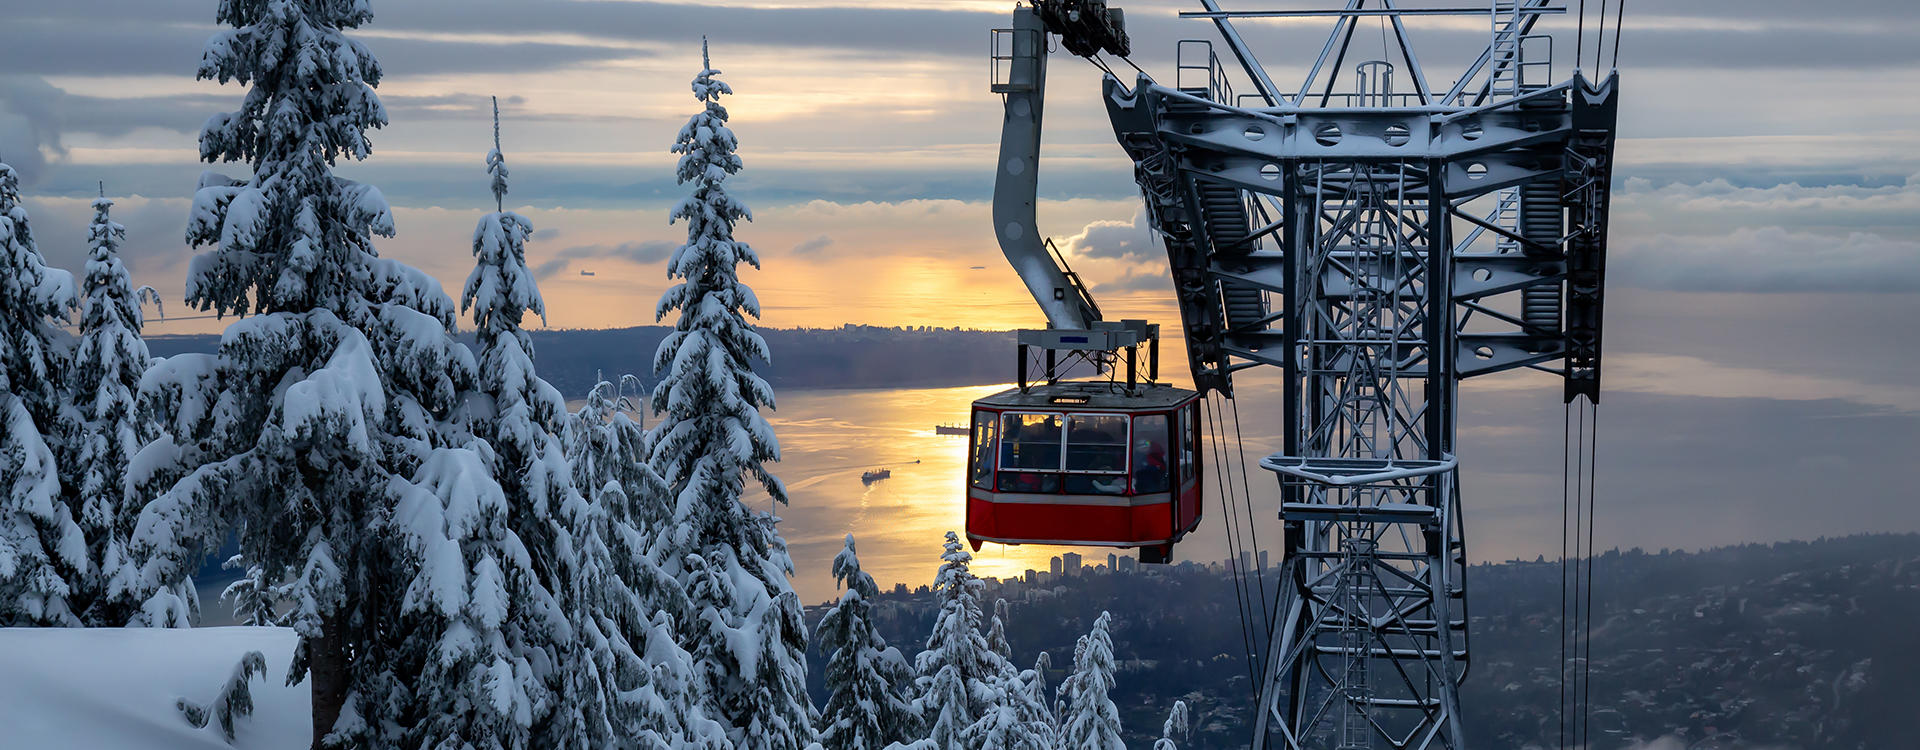 PP-Vancouver_Grouse-山